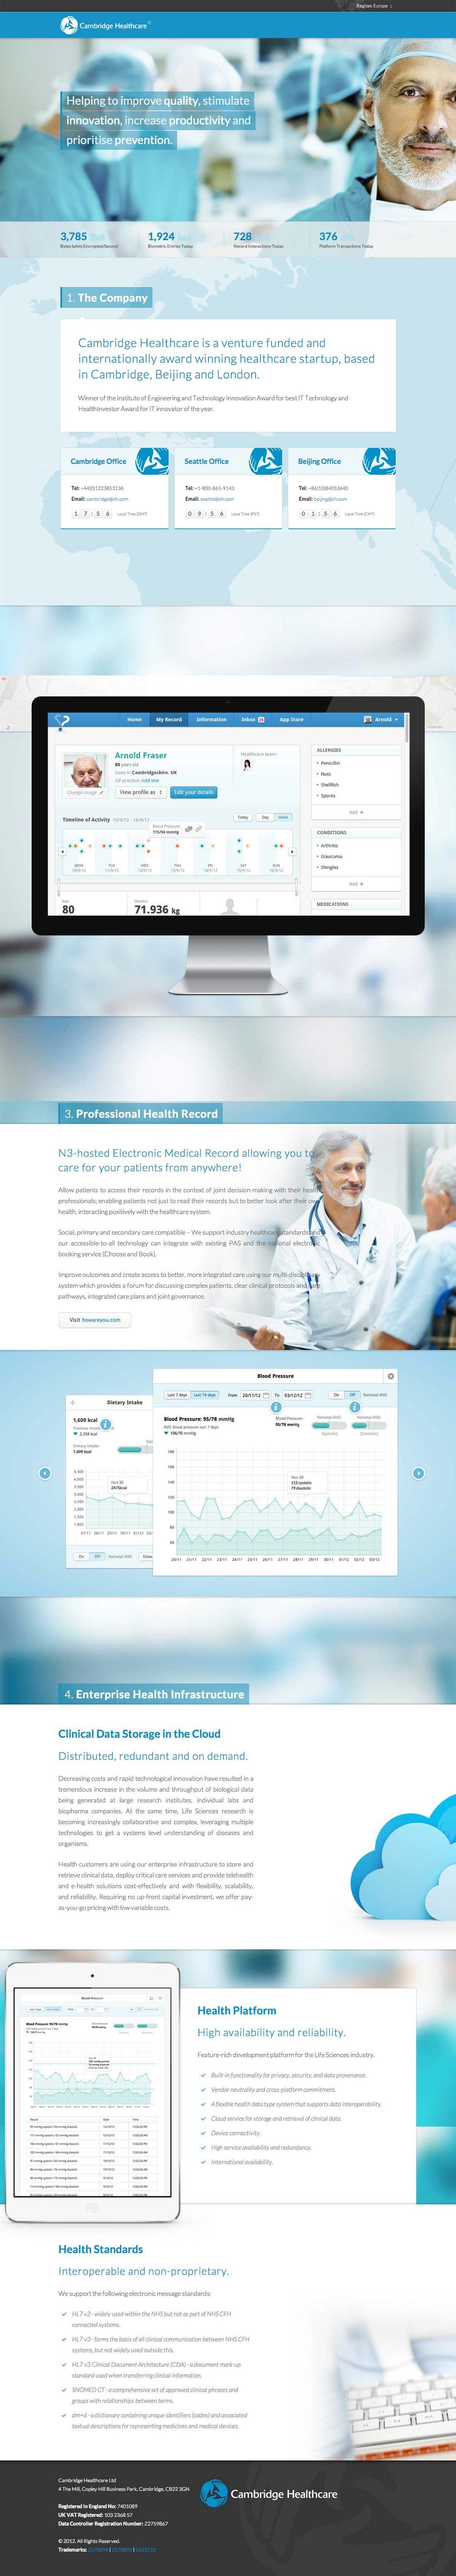 45 professional medical website designs templates you can learn from. Black Bedroom Furniture Sets. Home Design Ideas